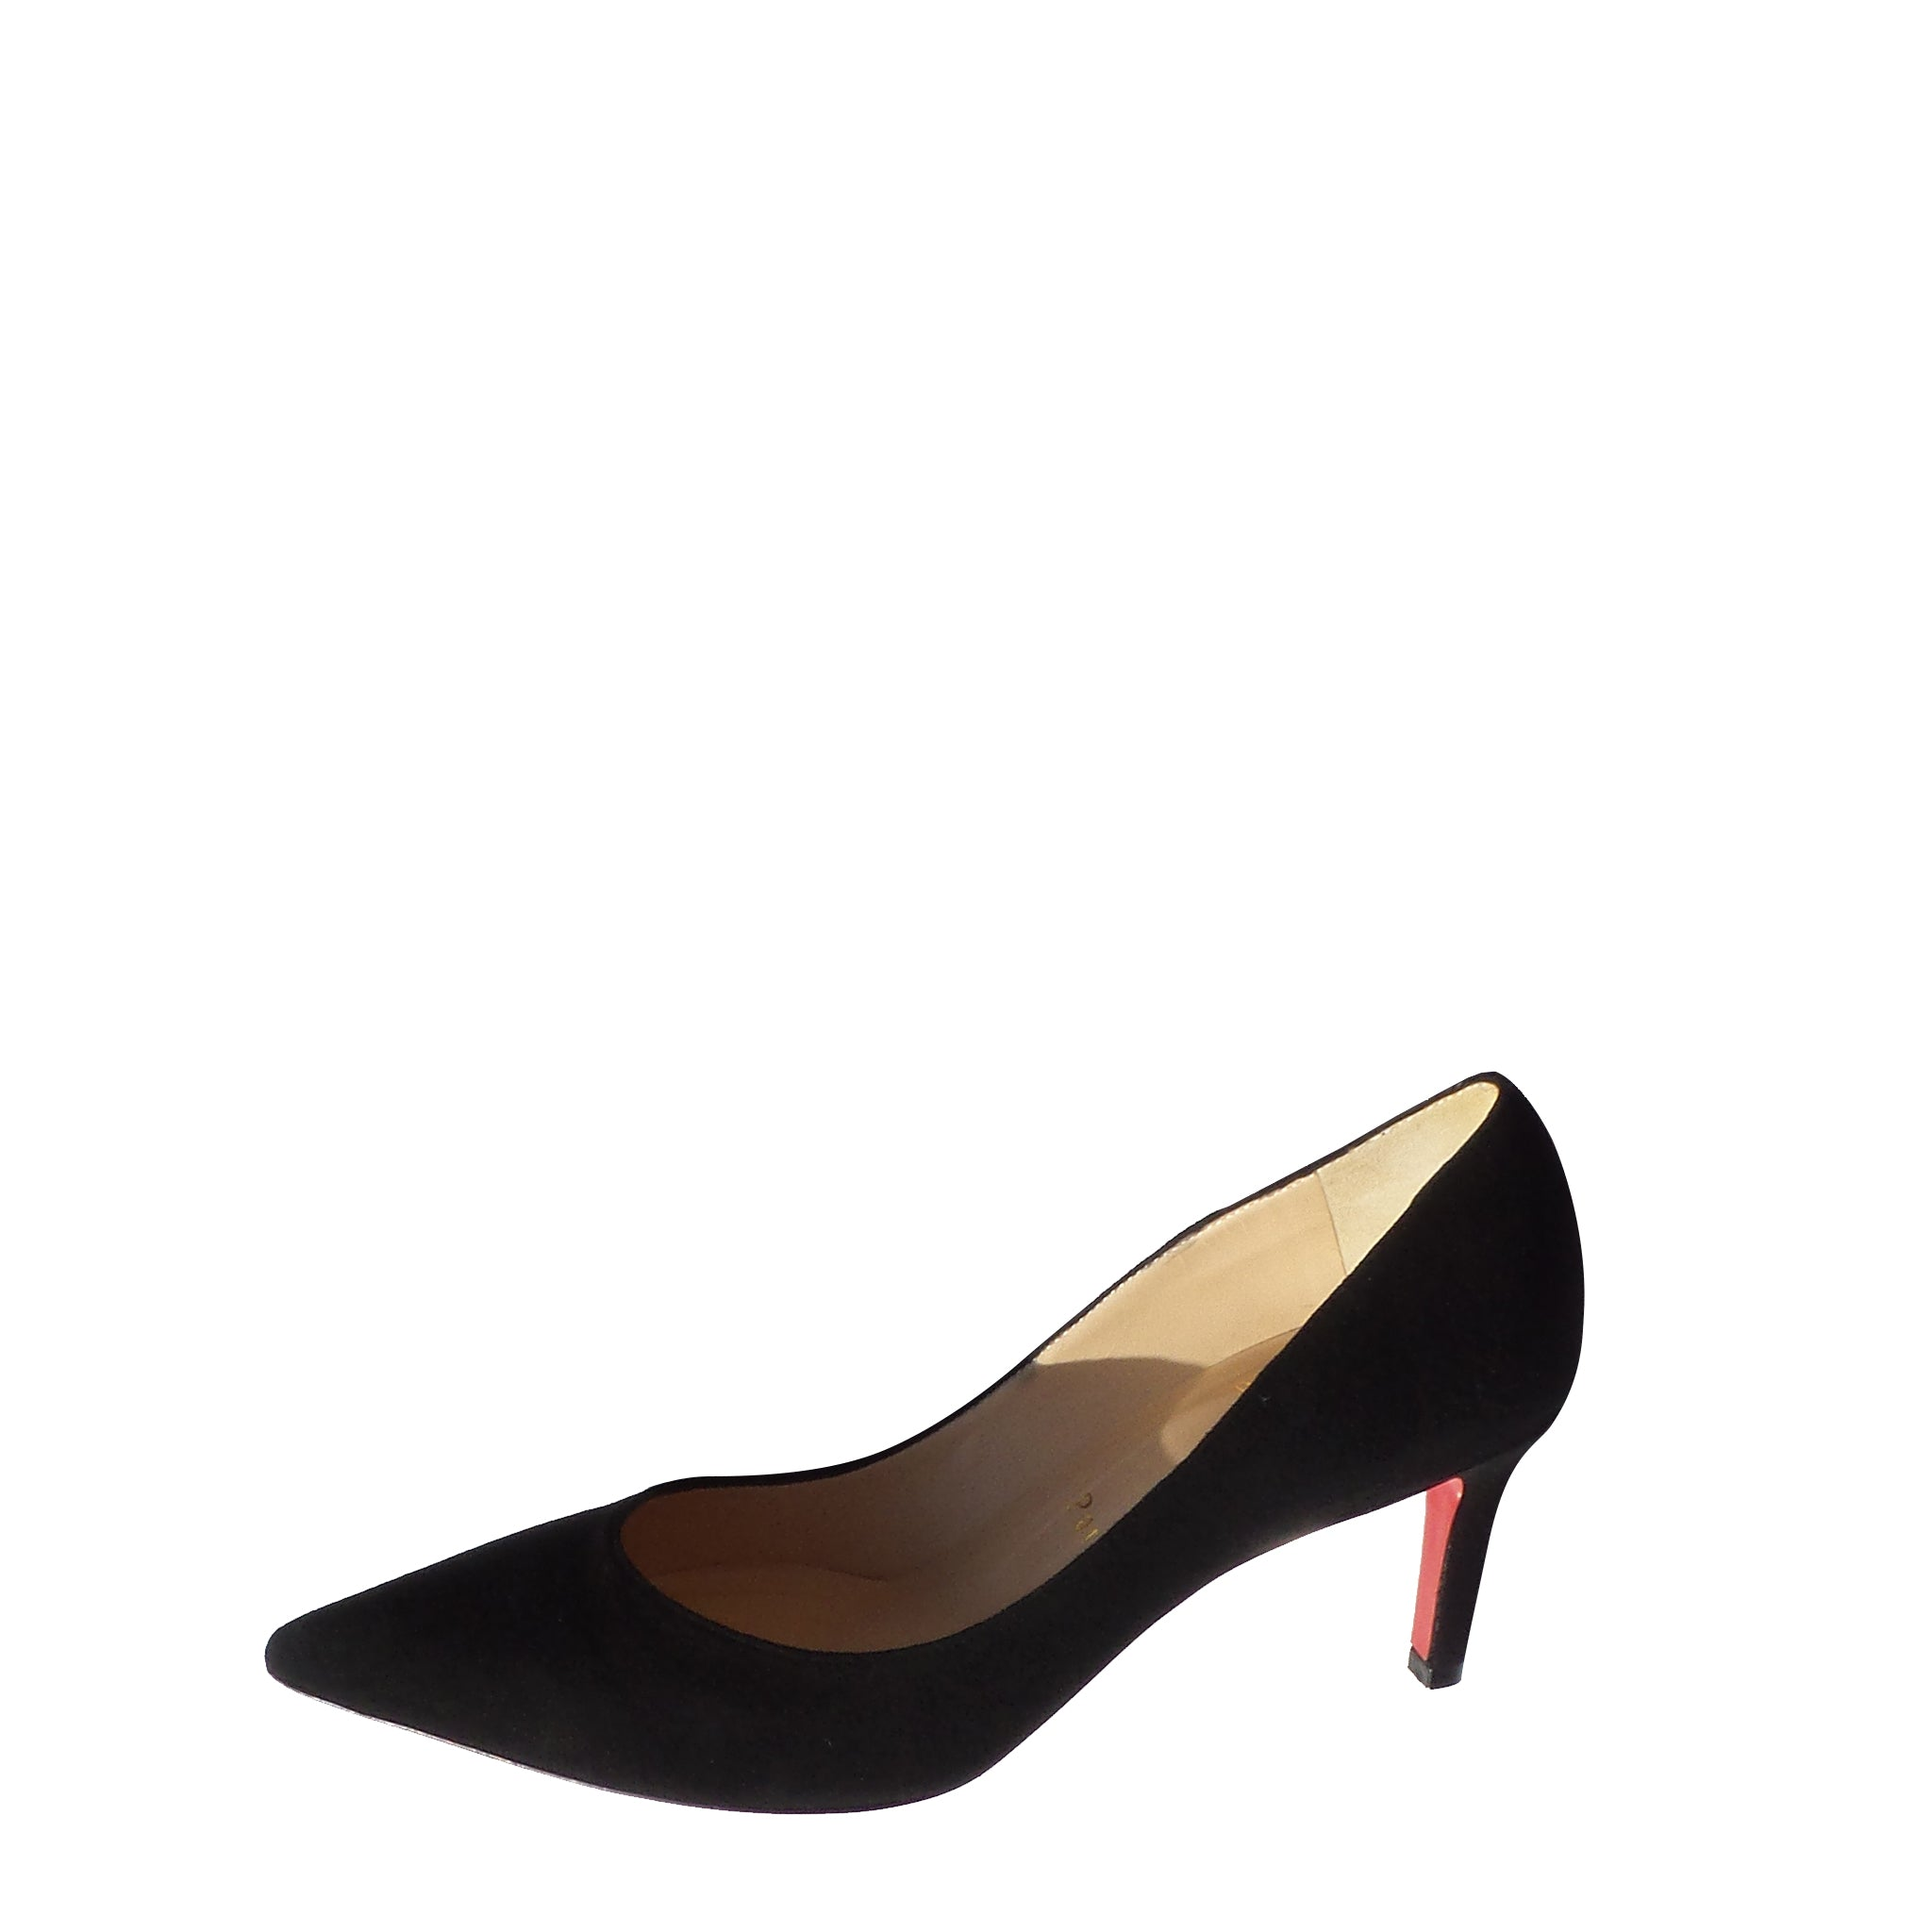 CHRISTIAN LOUBOUTIN Black Suede Mid Heel Classic Pumps 36.5 NOB